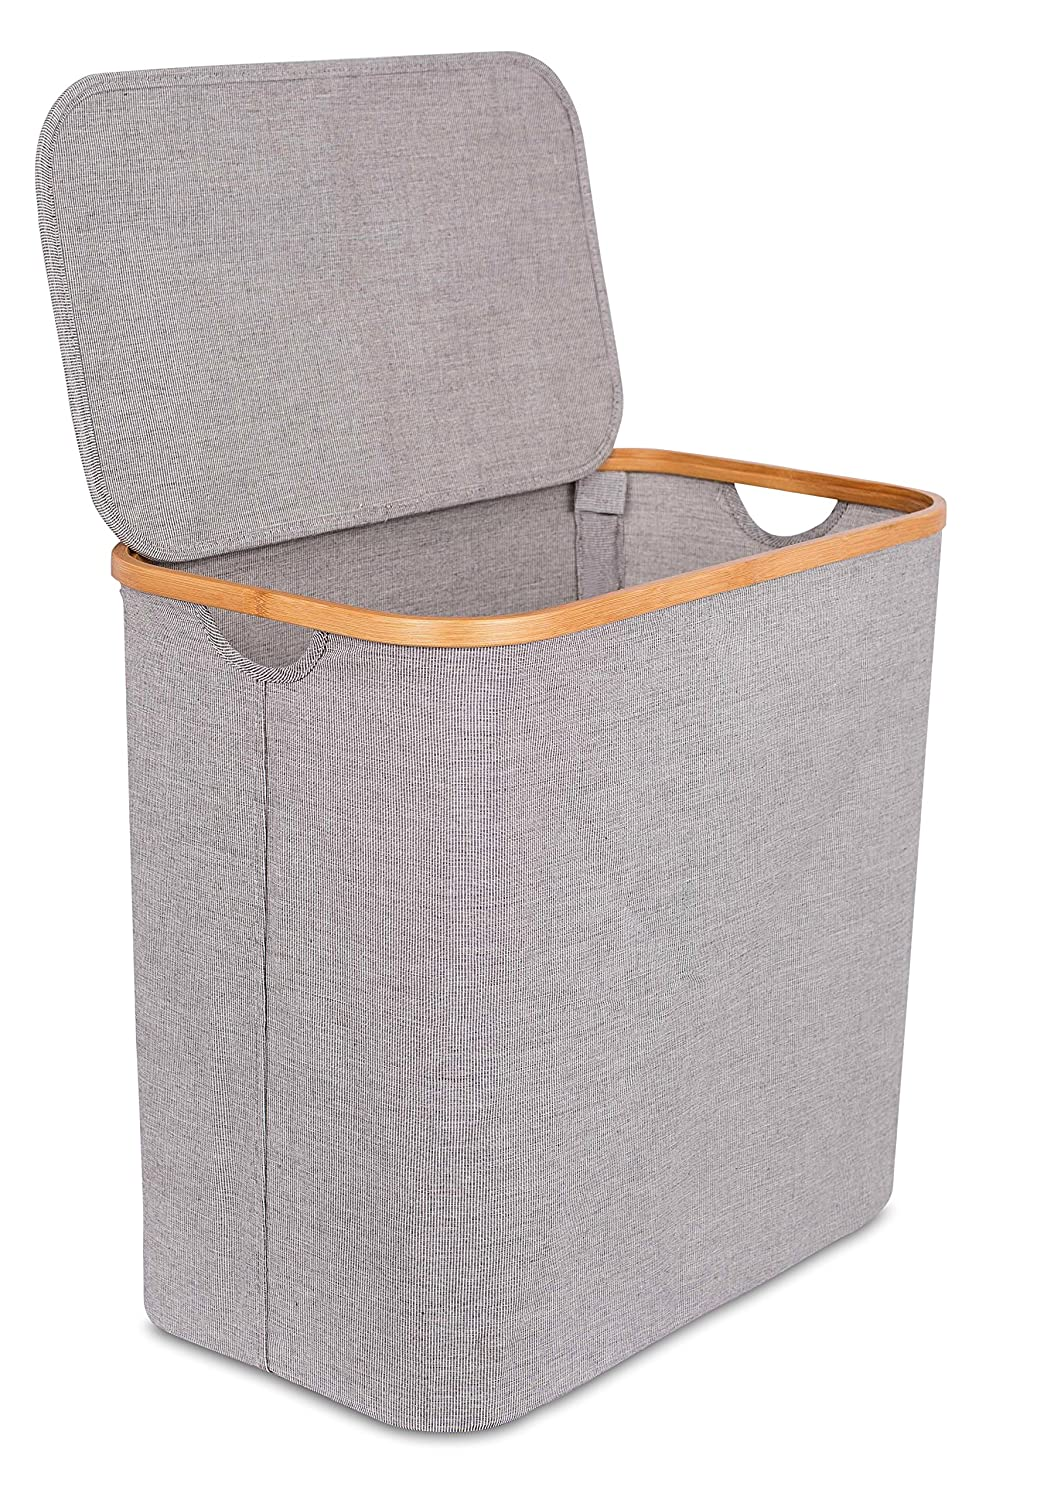 BirdRock Home Divided Bamboo & Canvas Hamper | Double Laundry Basket with Lid | Modern 2 Section Foldable Hamper | Cut Out Handles | Grey Narrow Design | Great for Kids Adults 10449